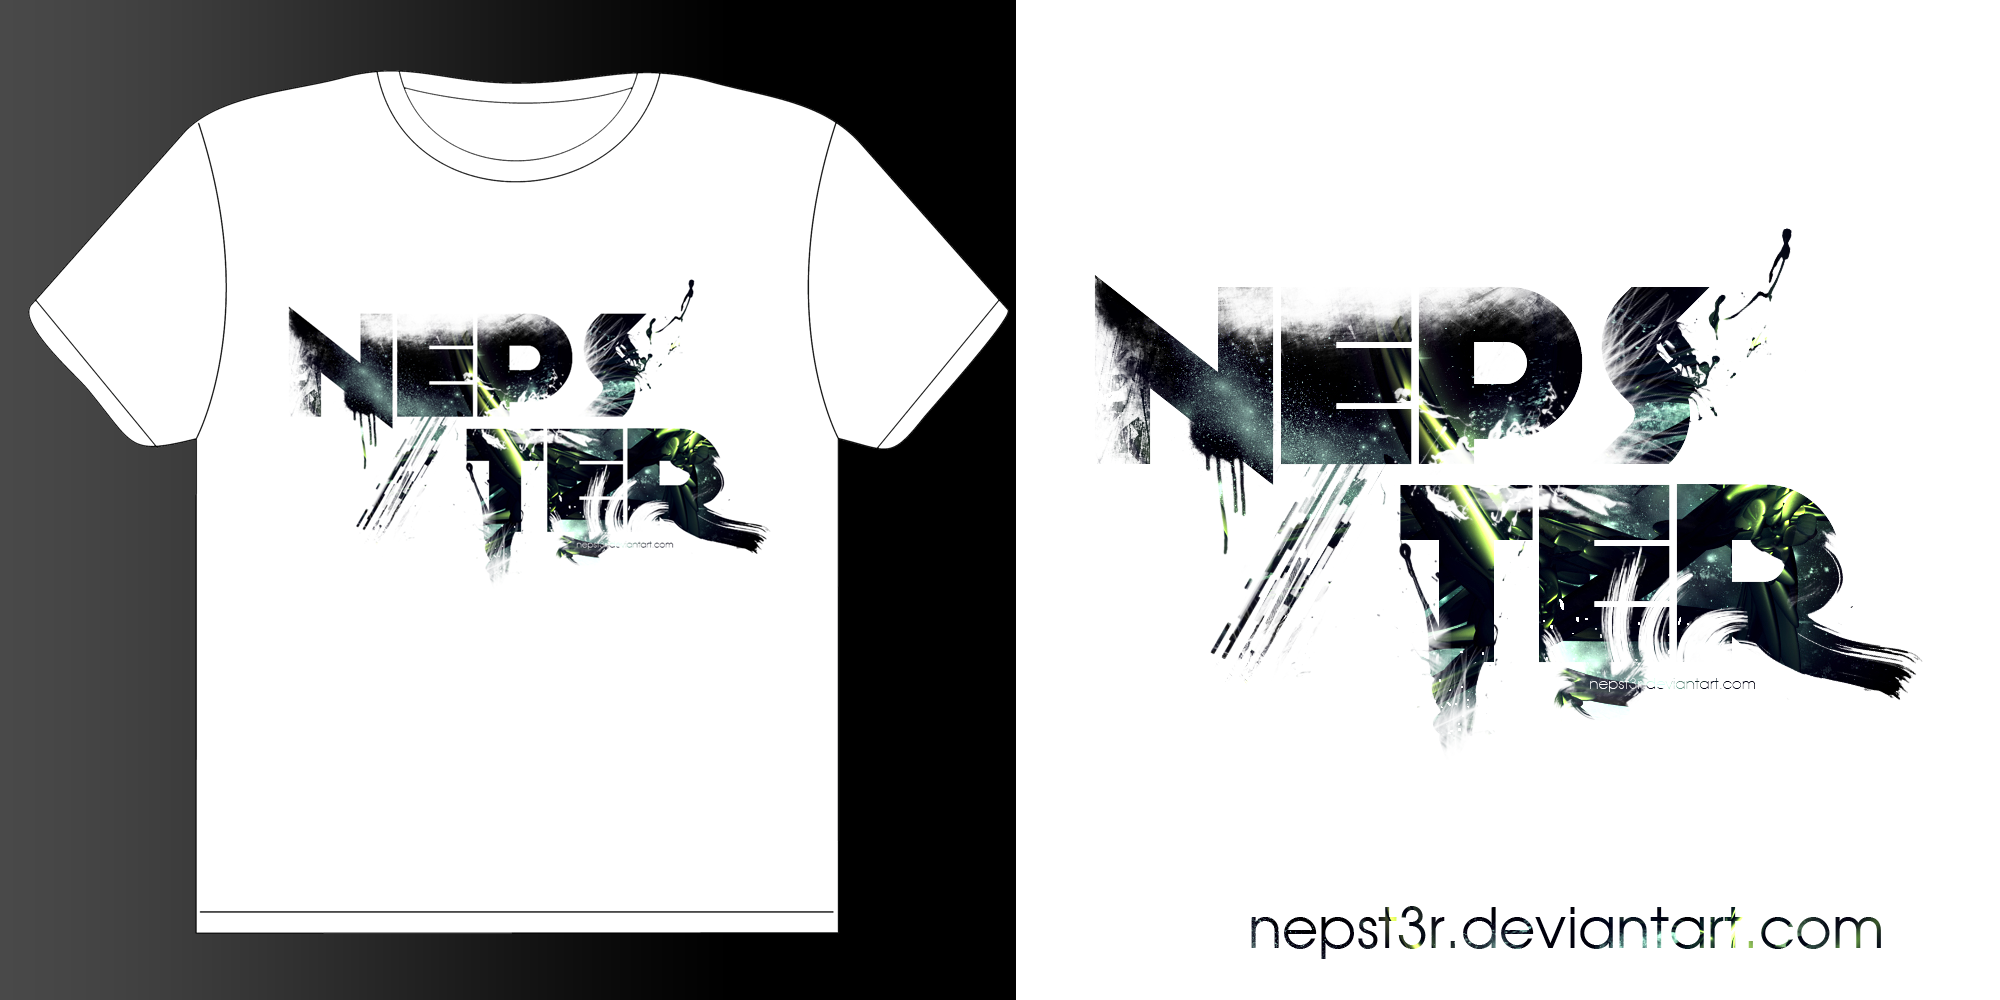 New nepster t shirt design by nepst3r on deviantart for Modern t shirt designs